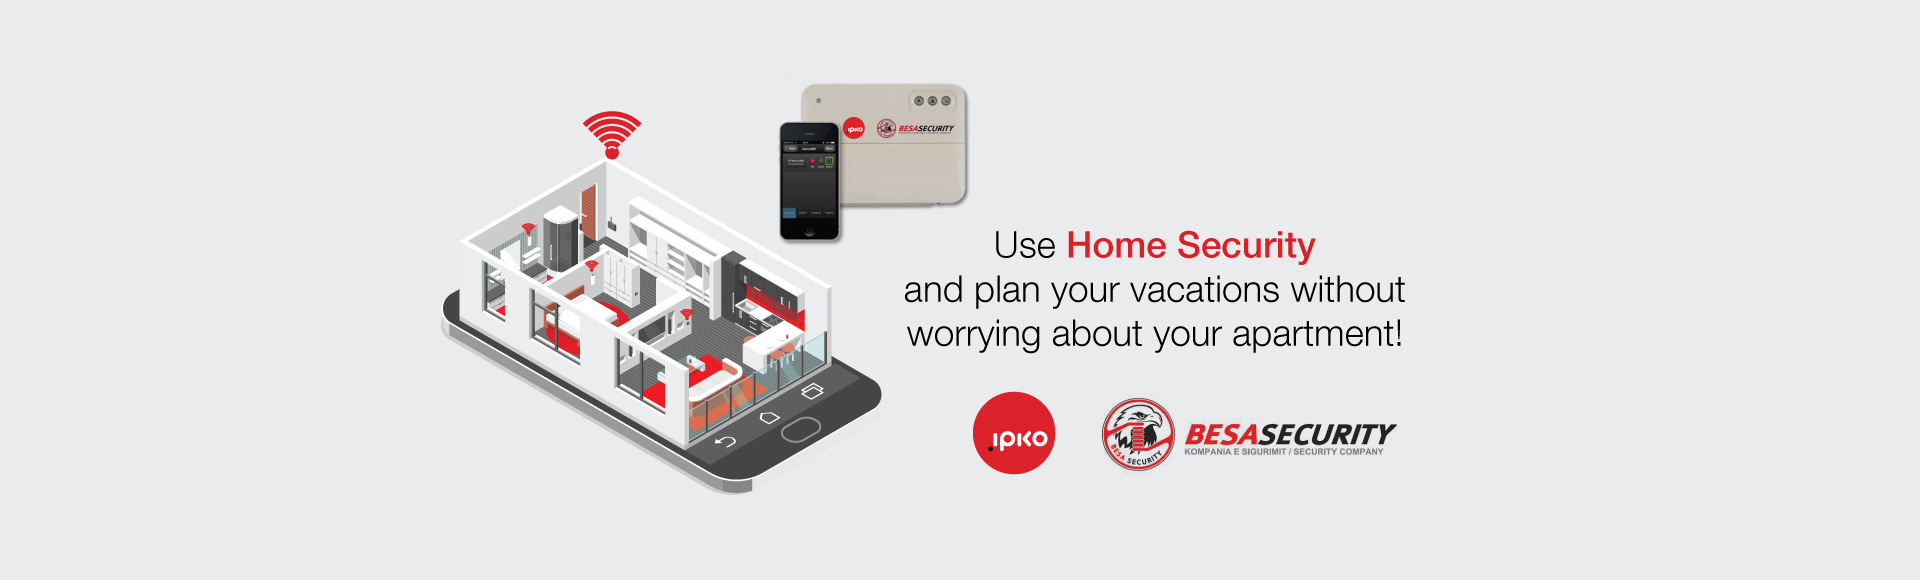 Home Security - Ipko Telecommunications